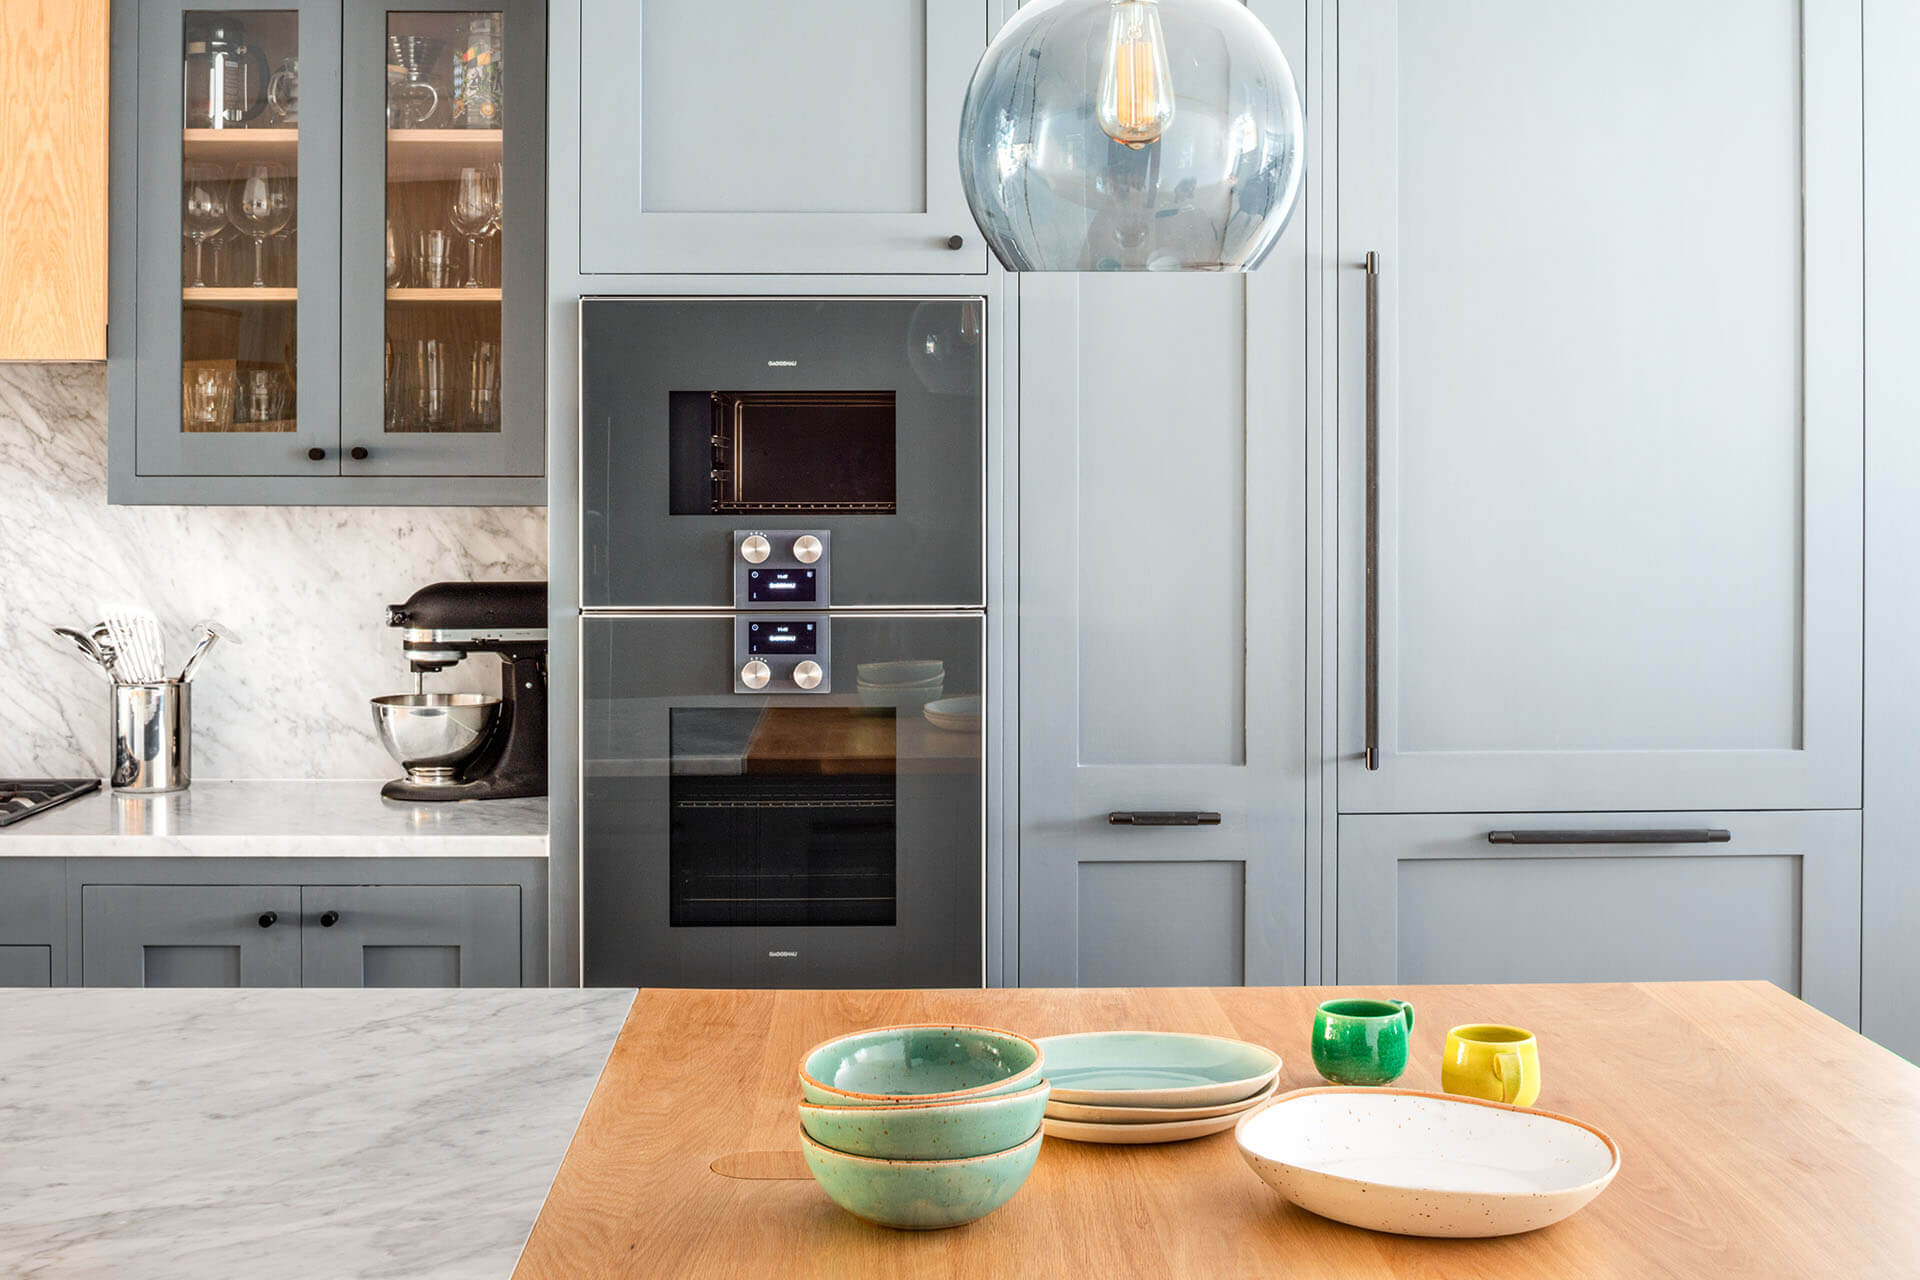 Grand Grey Shaker Kitchen hand painted with Buster and Punch pulls and knobs